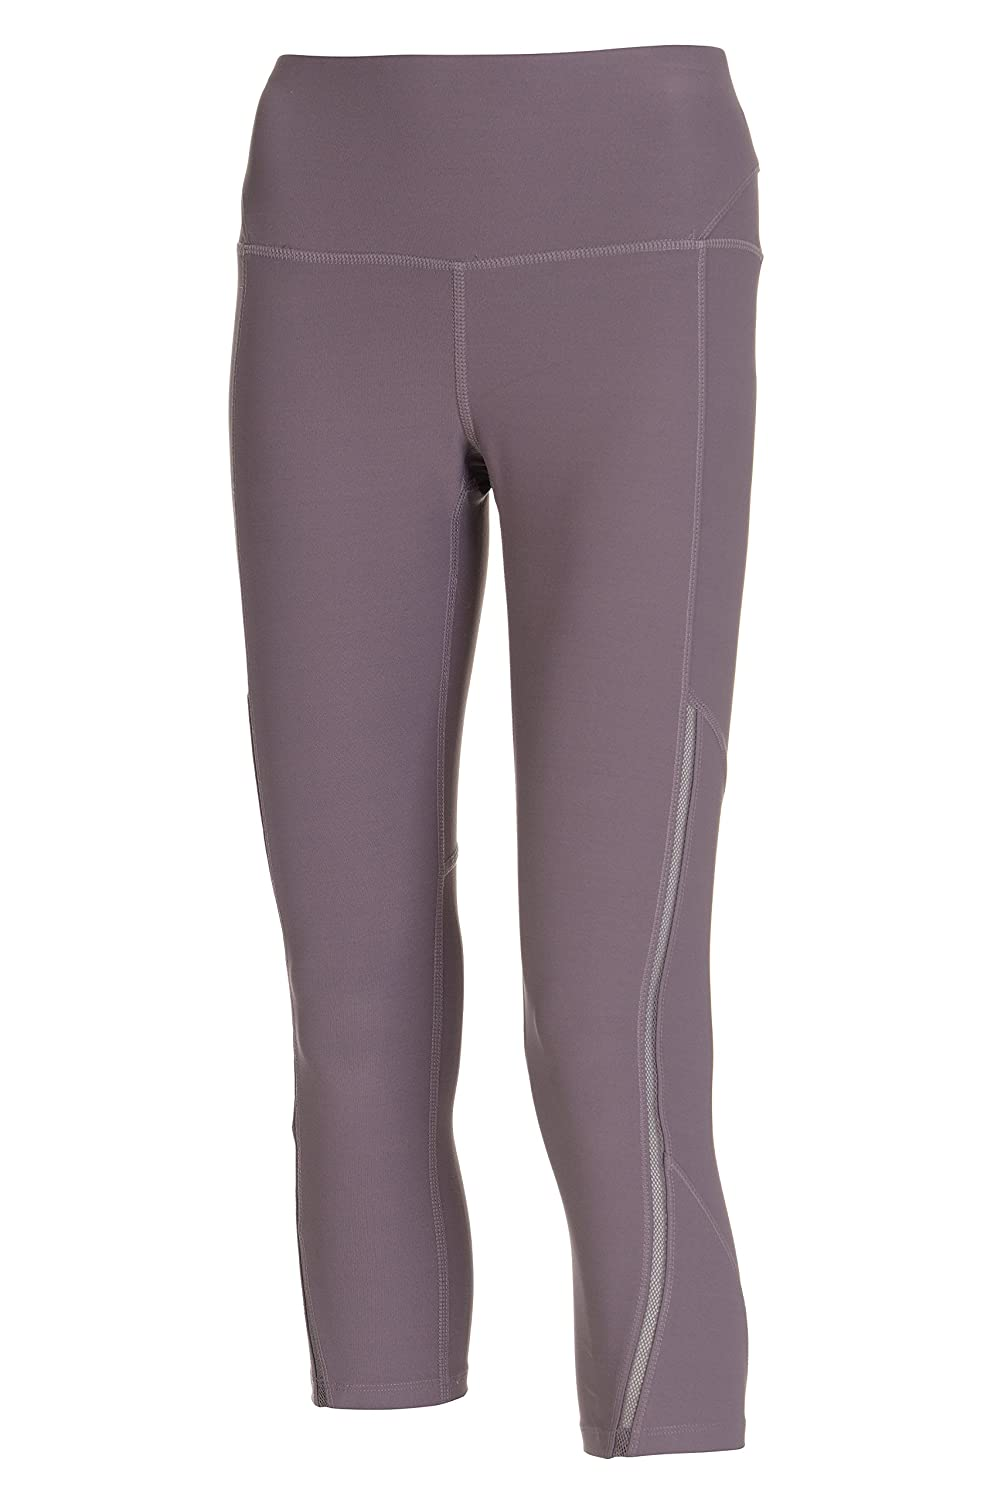 ff3746b63f5af Apana Women's Athletic Performance Workout Running and Yoga Legging (Small,  Truffle), Clothing - Amazon Canada